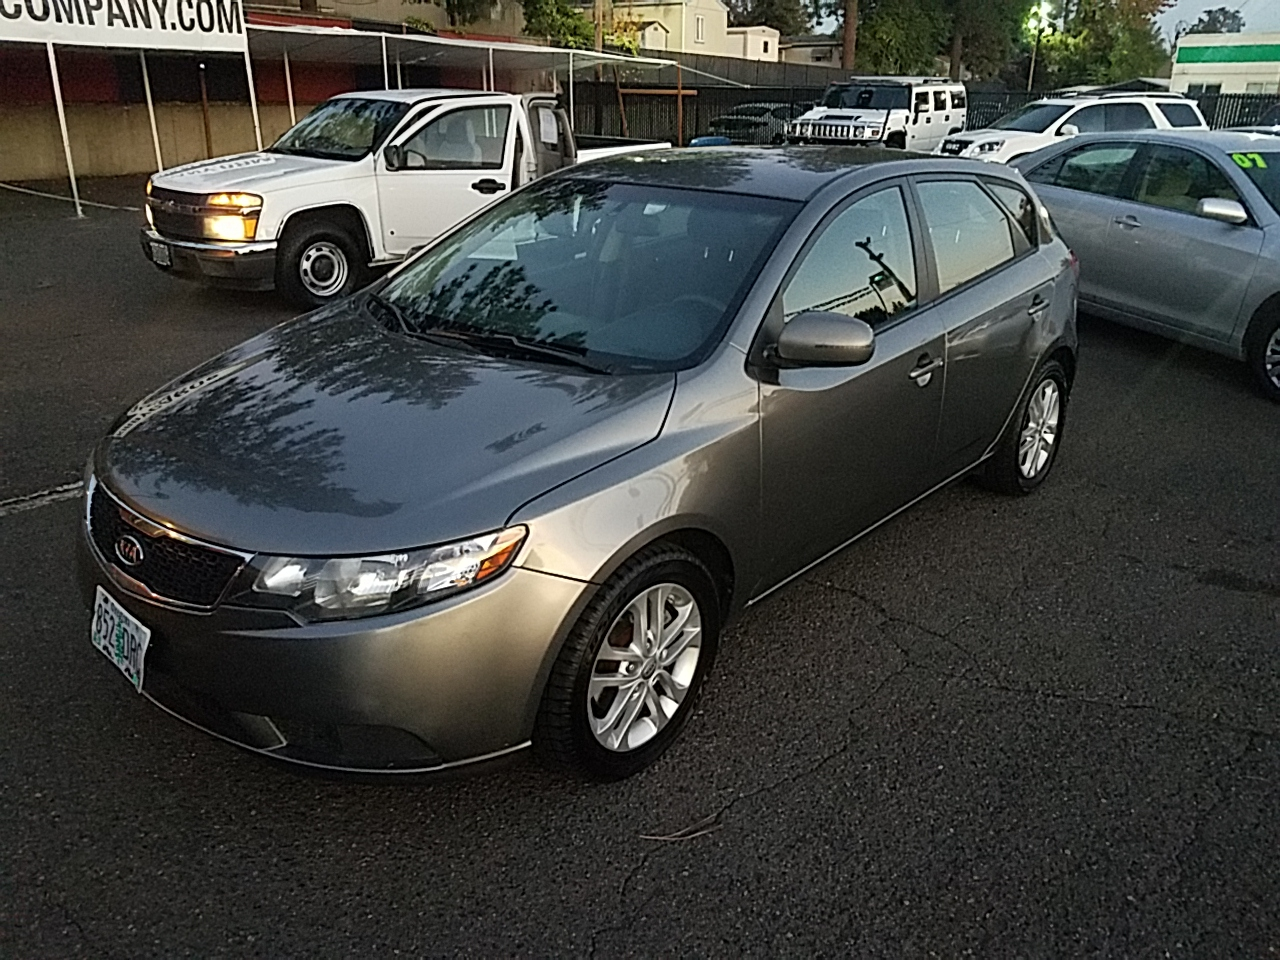 2012 Kia Forte 5-Door Hatchback EX  MAGS! CLEAN TITLE! 36MPG! ONE OWNER!